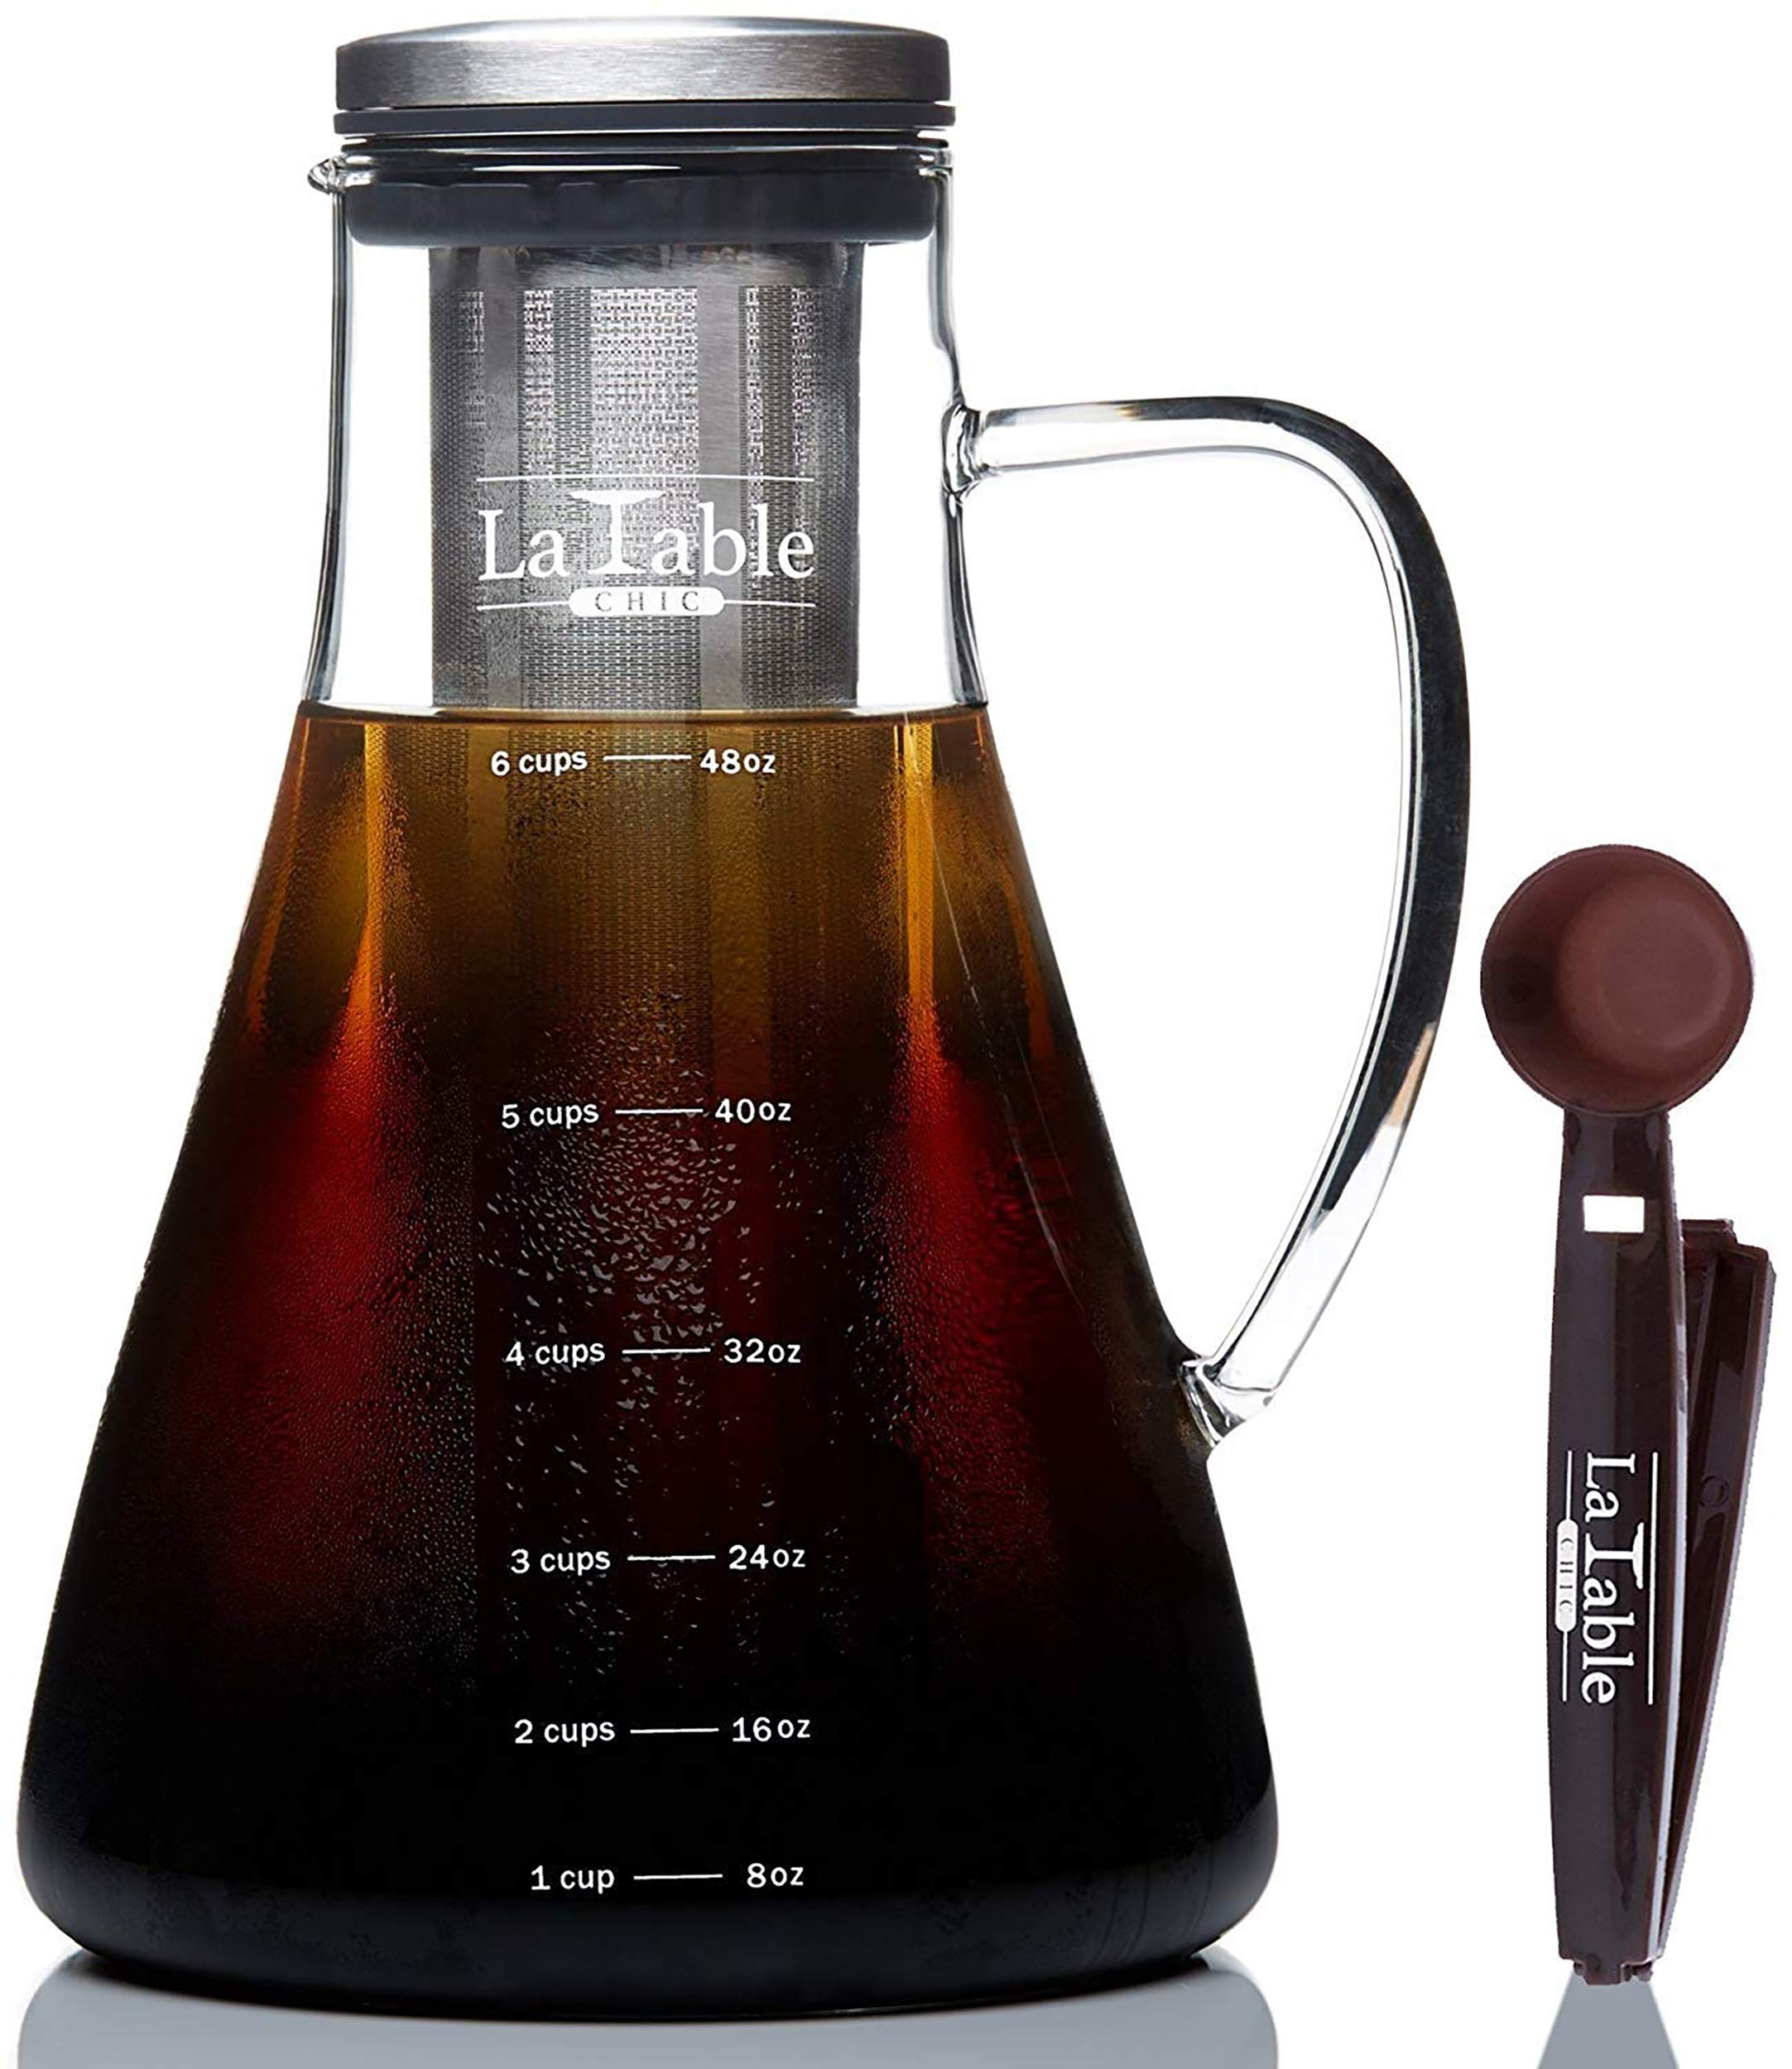 Cold Brew Coffee Maker and Tea Maker - Large 1.5L/50oz - Bonus Spoon - Glass Loose Leaf Iced Tea Infuser & Ultra Fine Double Mesh Stainless Steel Filter, Dishwasher Safe, Coffee Fresh For 2 Weeks by La Table Chic